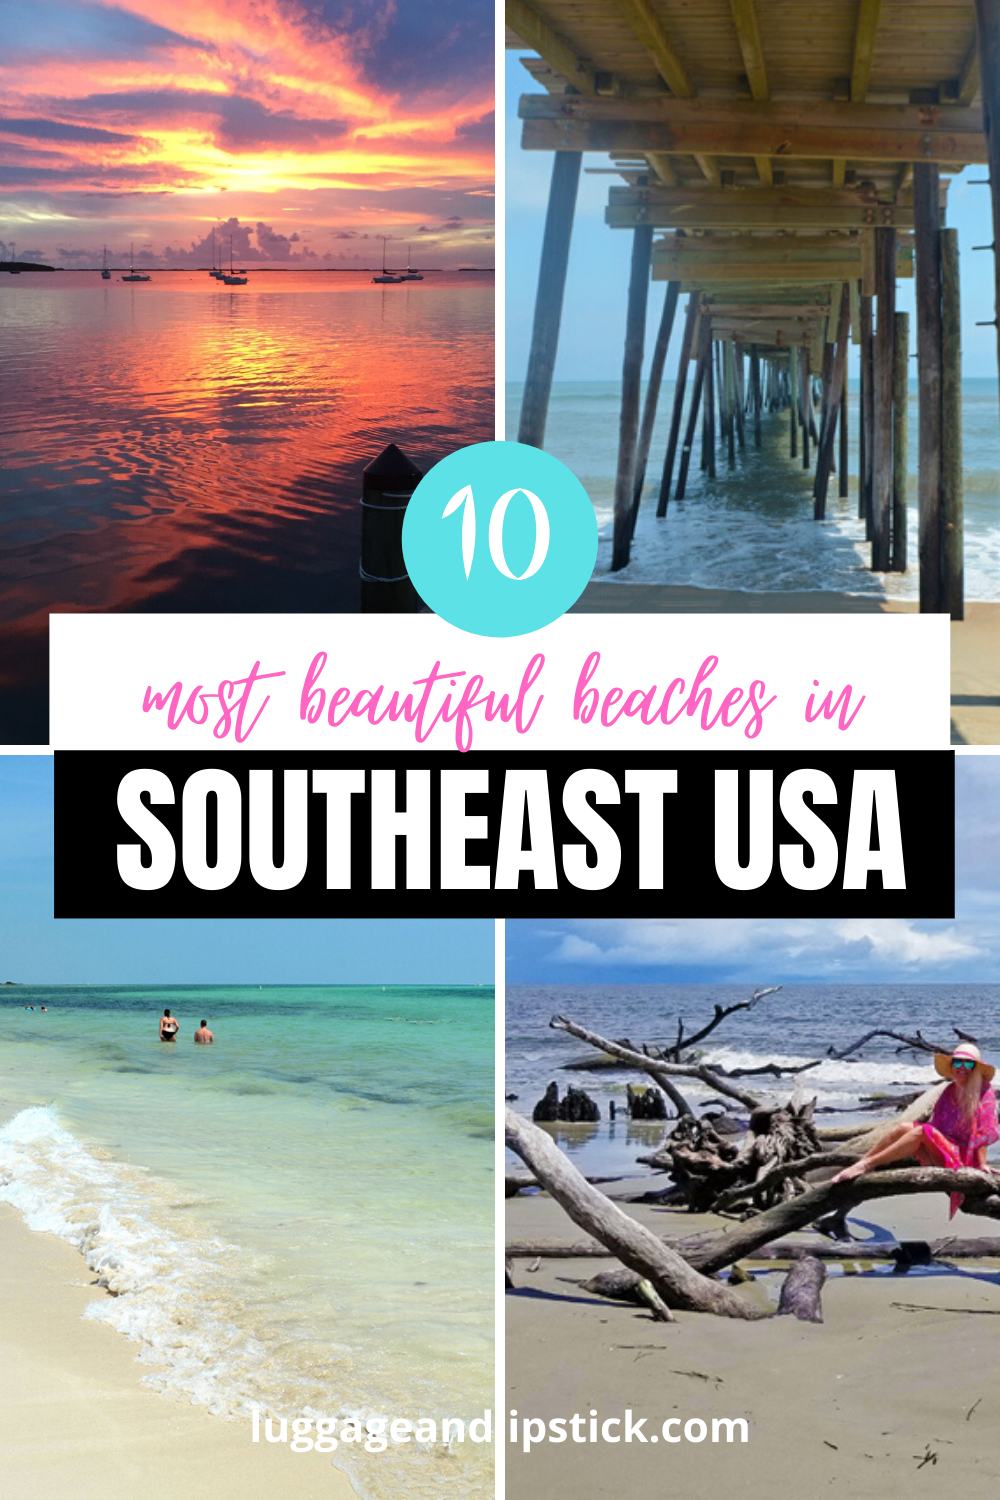 10 Most Beautiful Beaches In Southeast Usa In 2020 Travel Usa Usa Travel Destinations America Travel